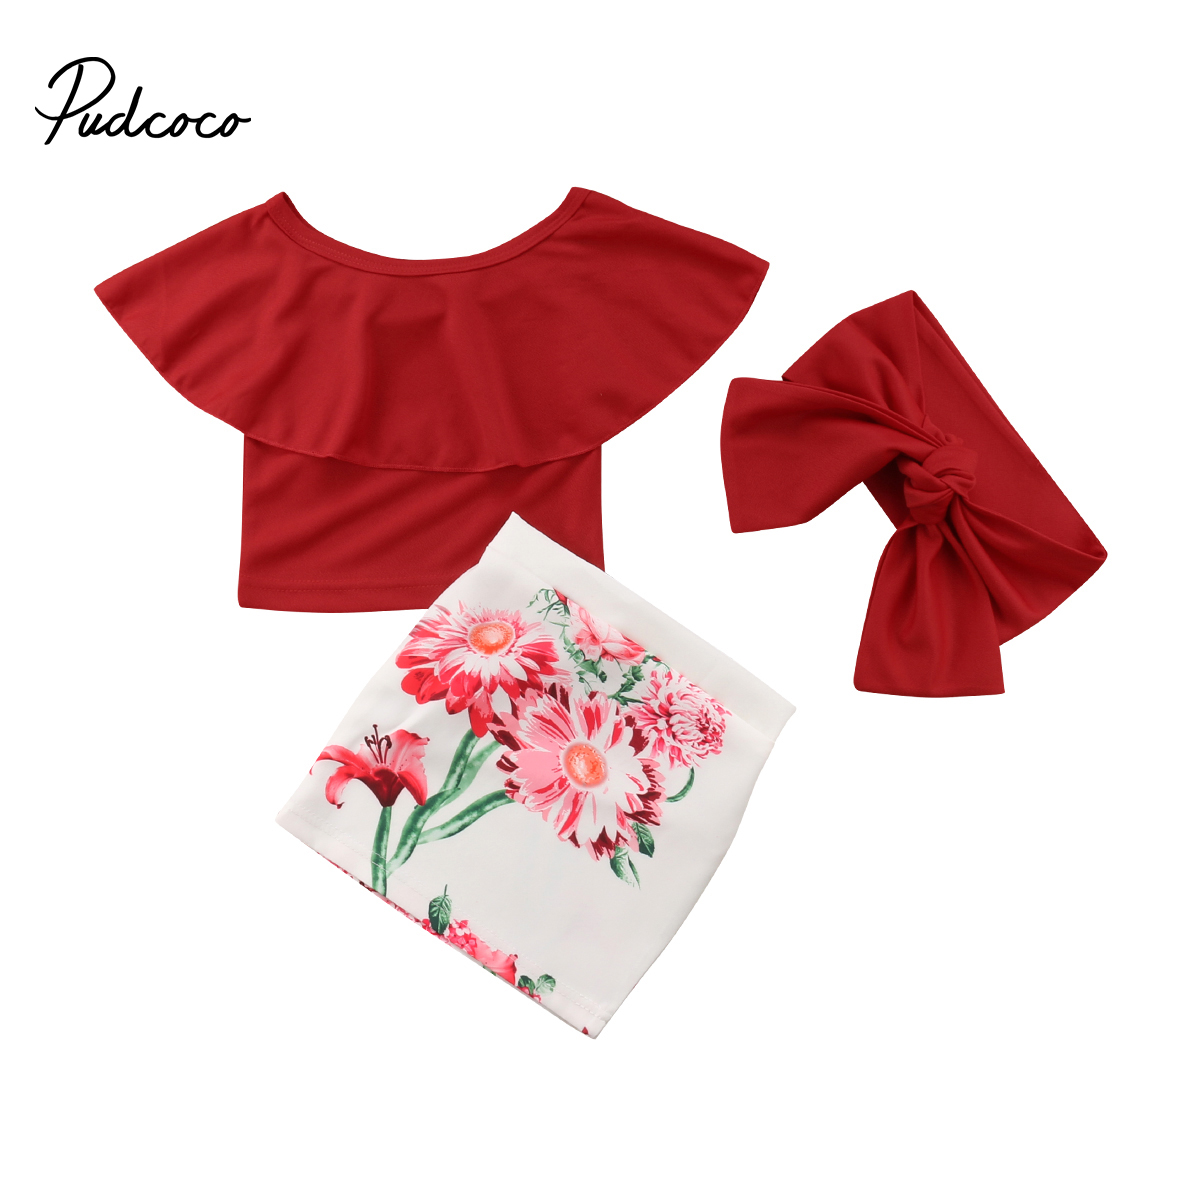 dd67424a4 Cute Floral Baby Girl Clothes Set 2017 Summer Ruffles Skirted Off Shoulder  Tops +Floral Skirt 2PCS Outfits Children Set